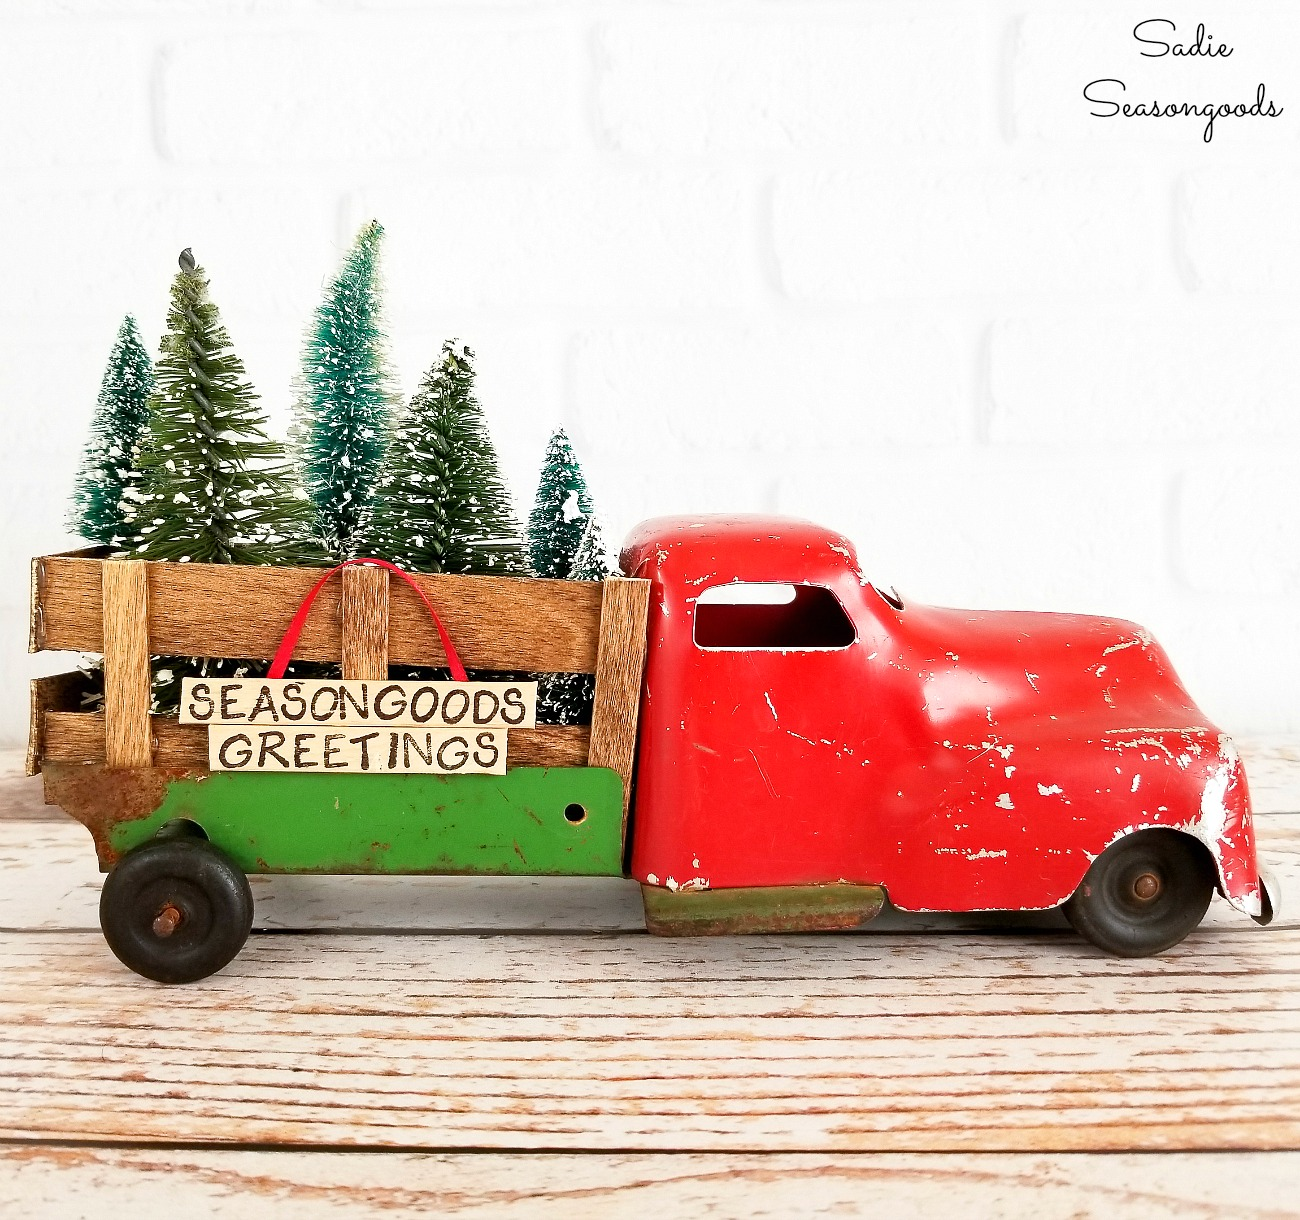 Red Truck Decor for Christmas with the Help of Popsicle Sticks!